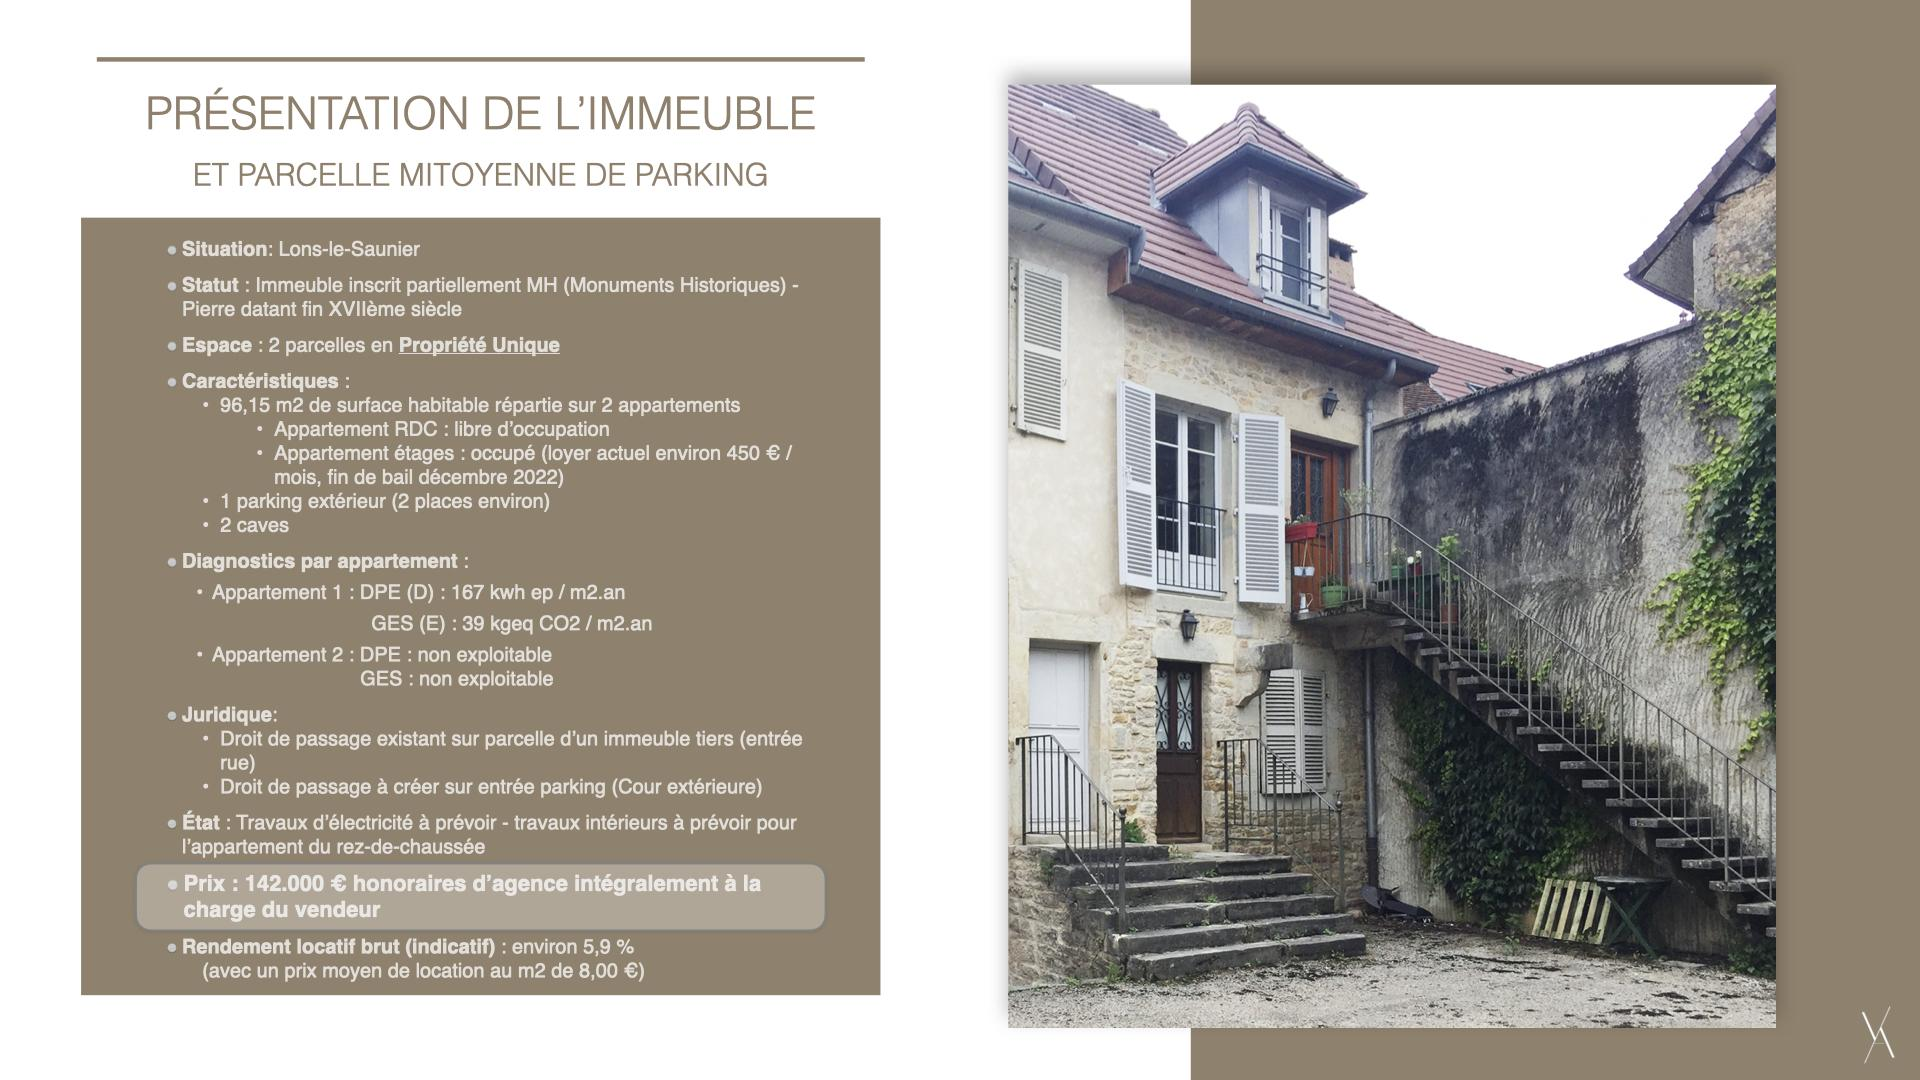 IMMEUBLE 2 APPARTEMENTS ET PARKING - JURA